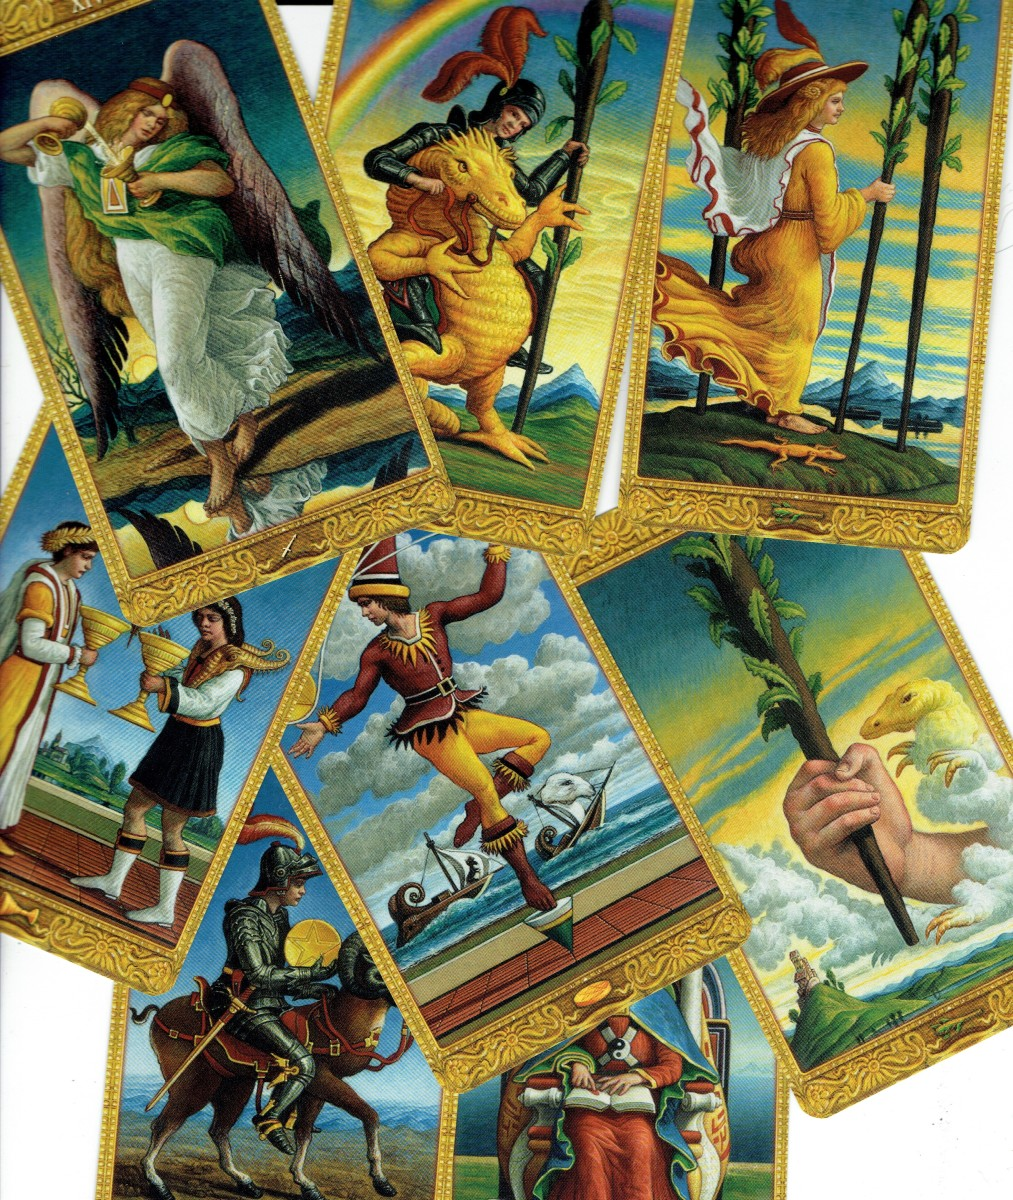 How Accurate Are Tarot Card Readings?